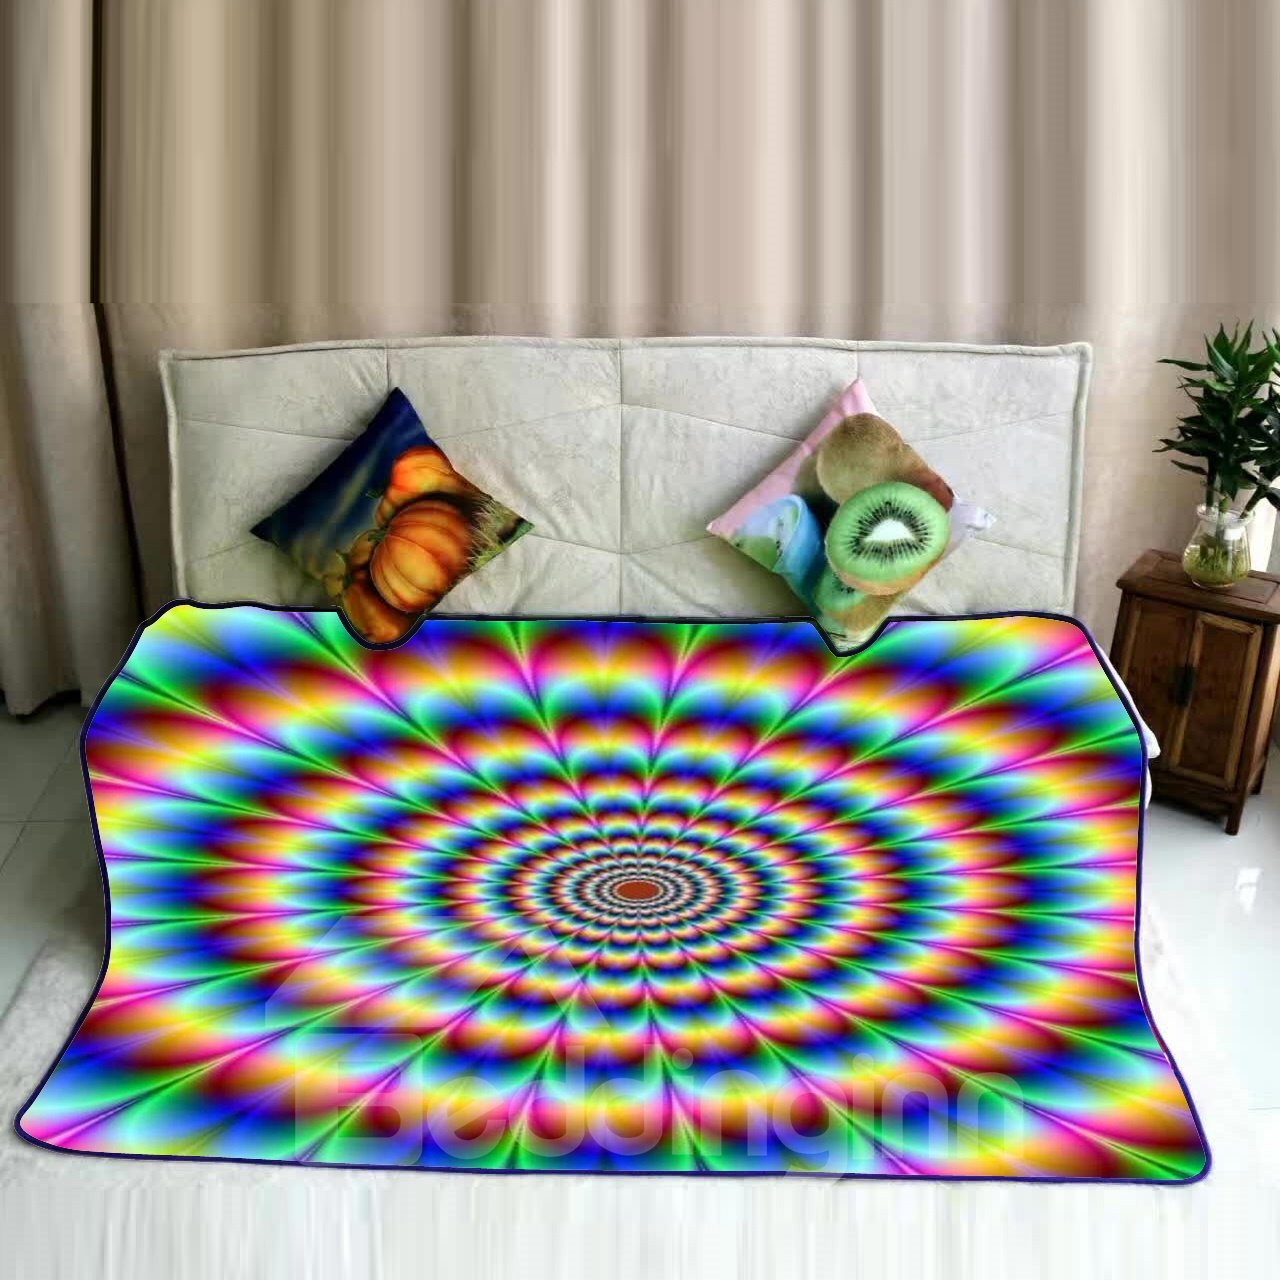 Colorful Floral Dizzy Mandala Pattern Flannel Bed Blankets